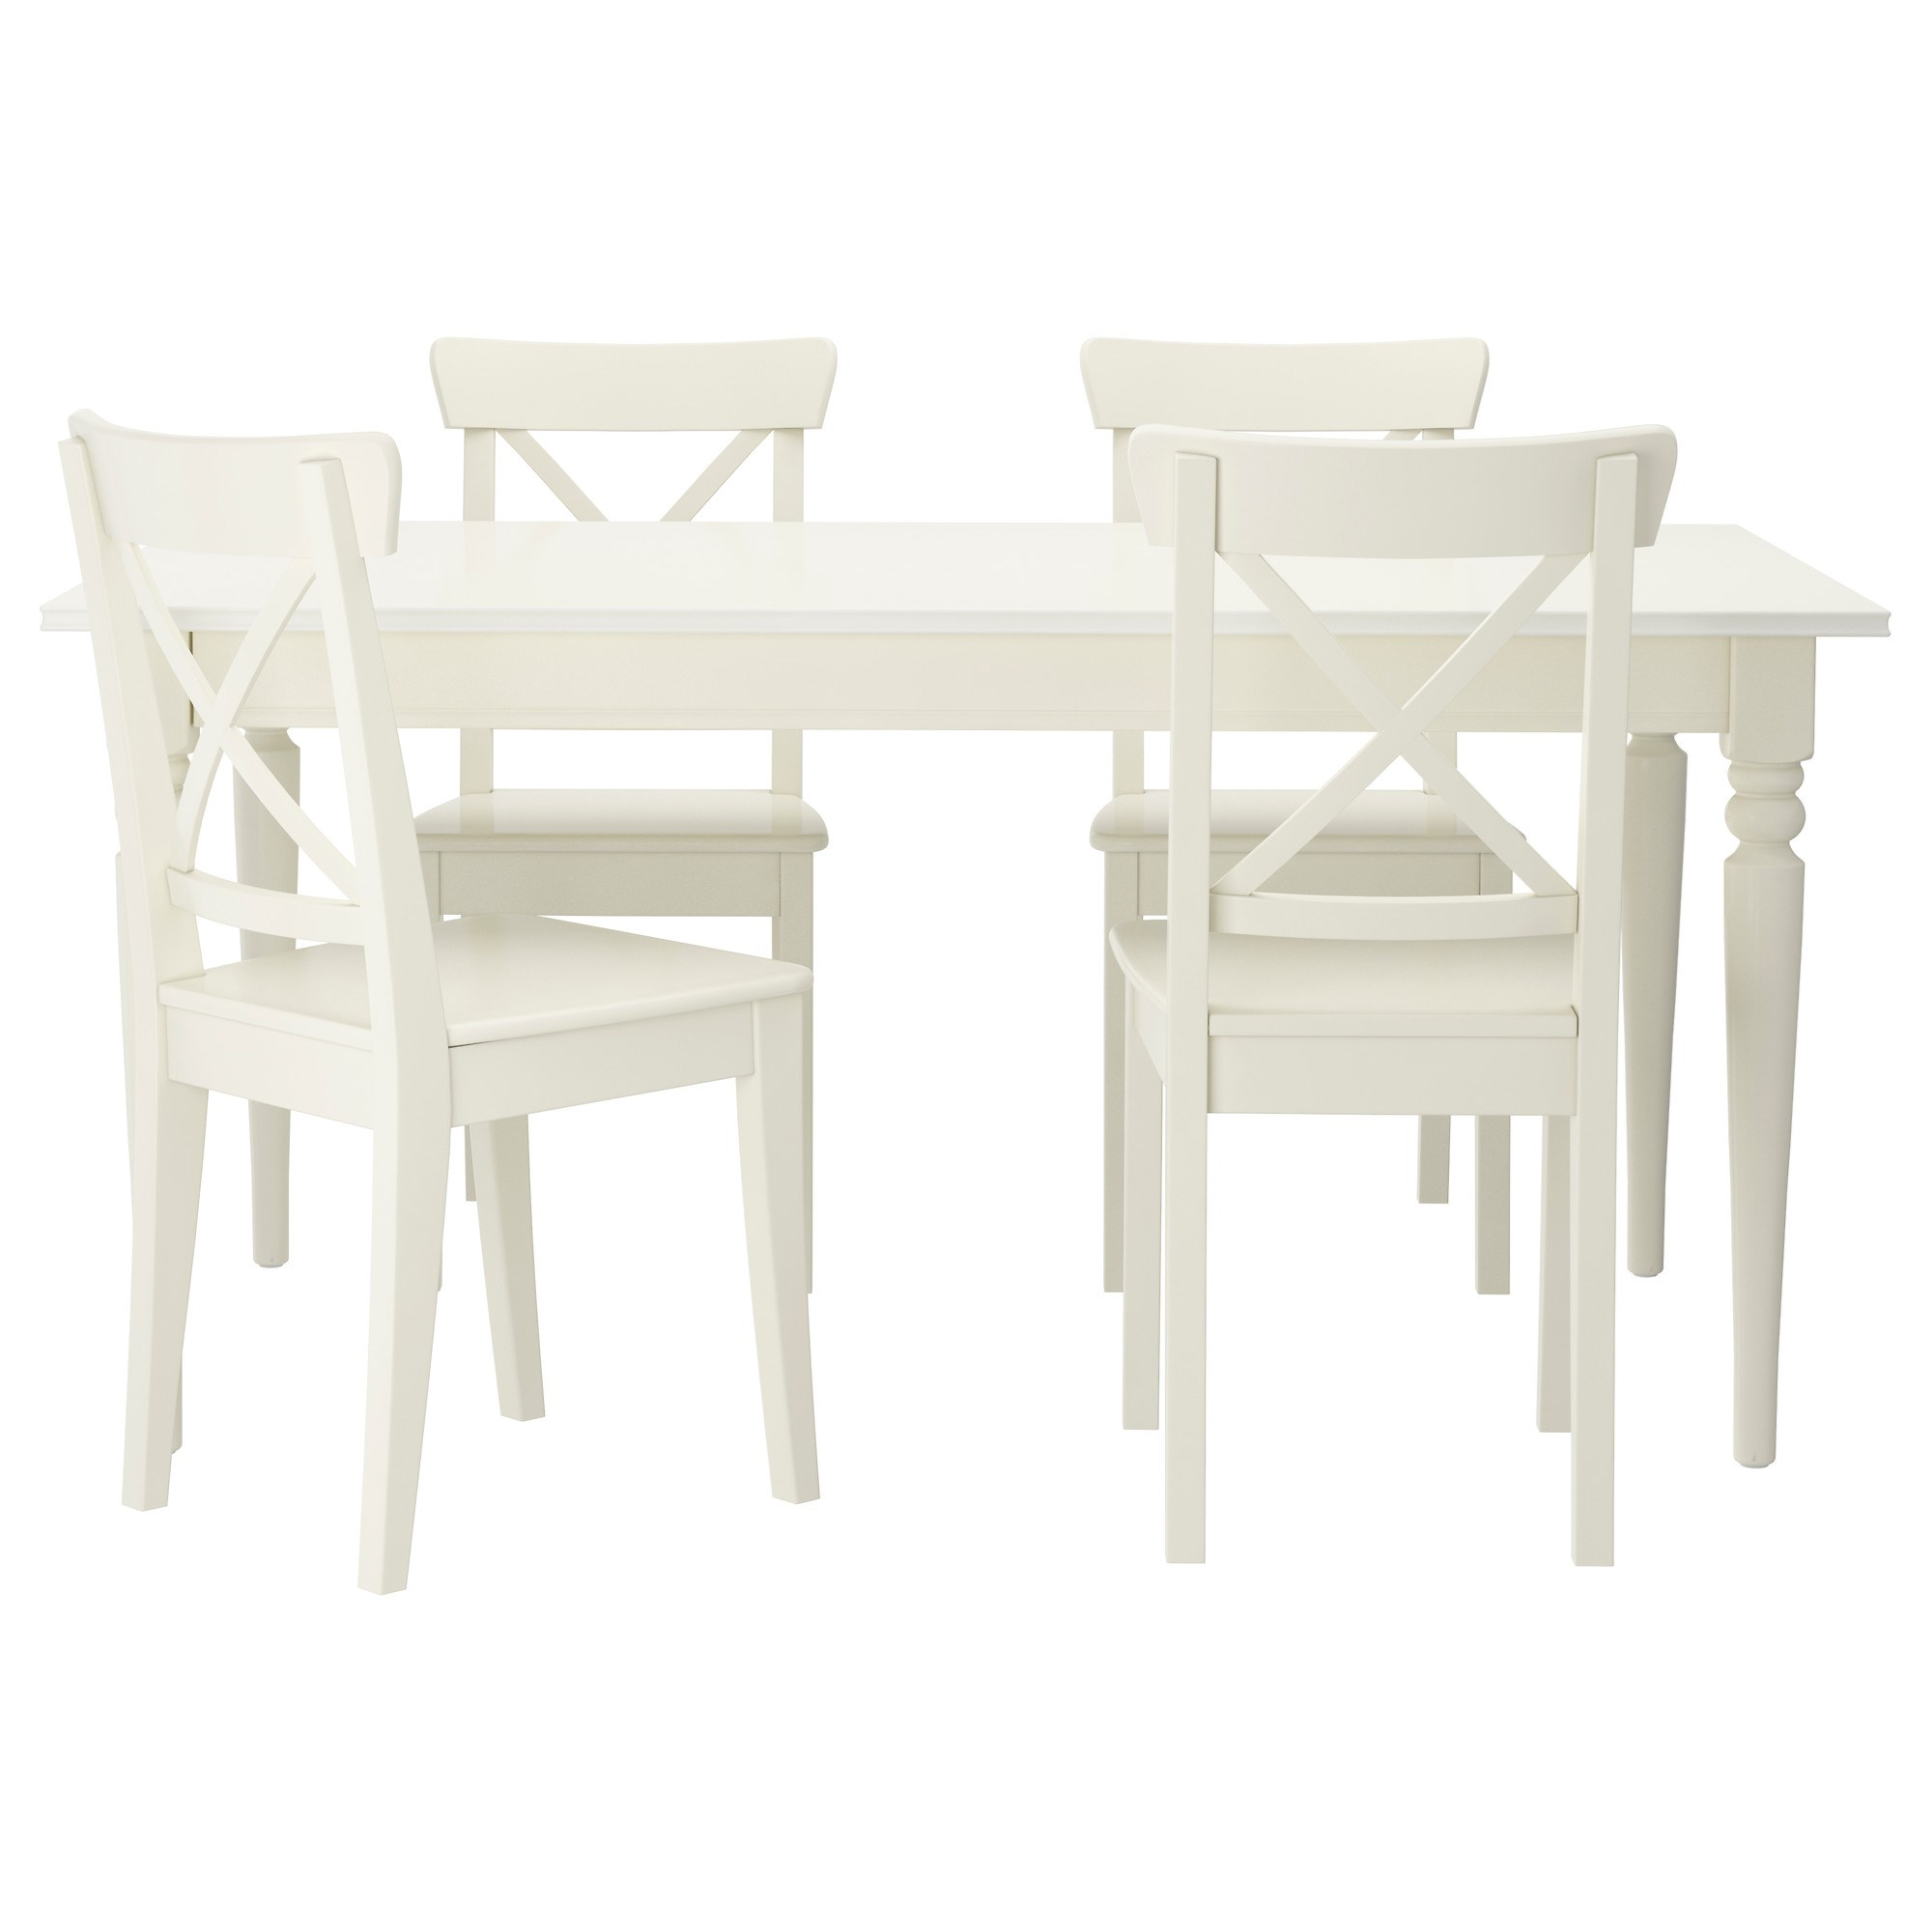 Ingatorp dining table and chairs white 155 cm ikea kitchen